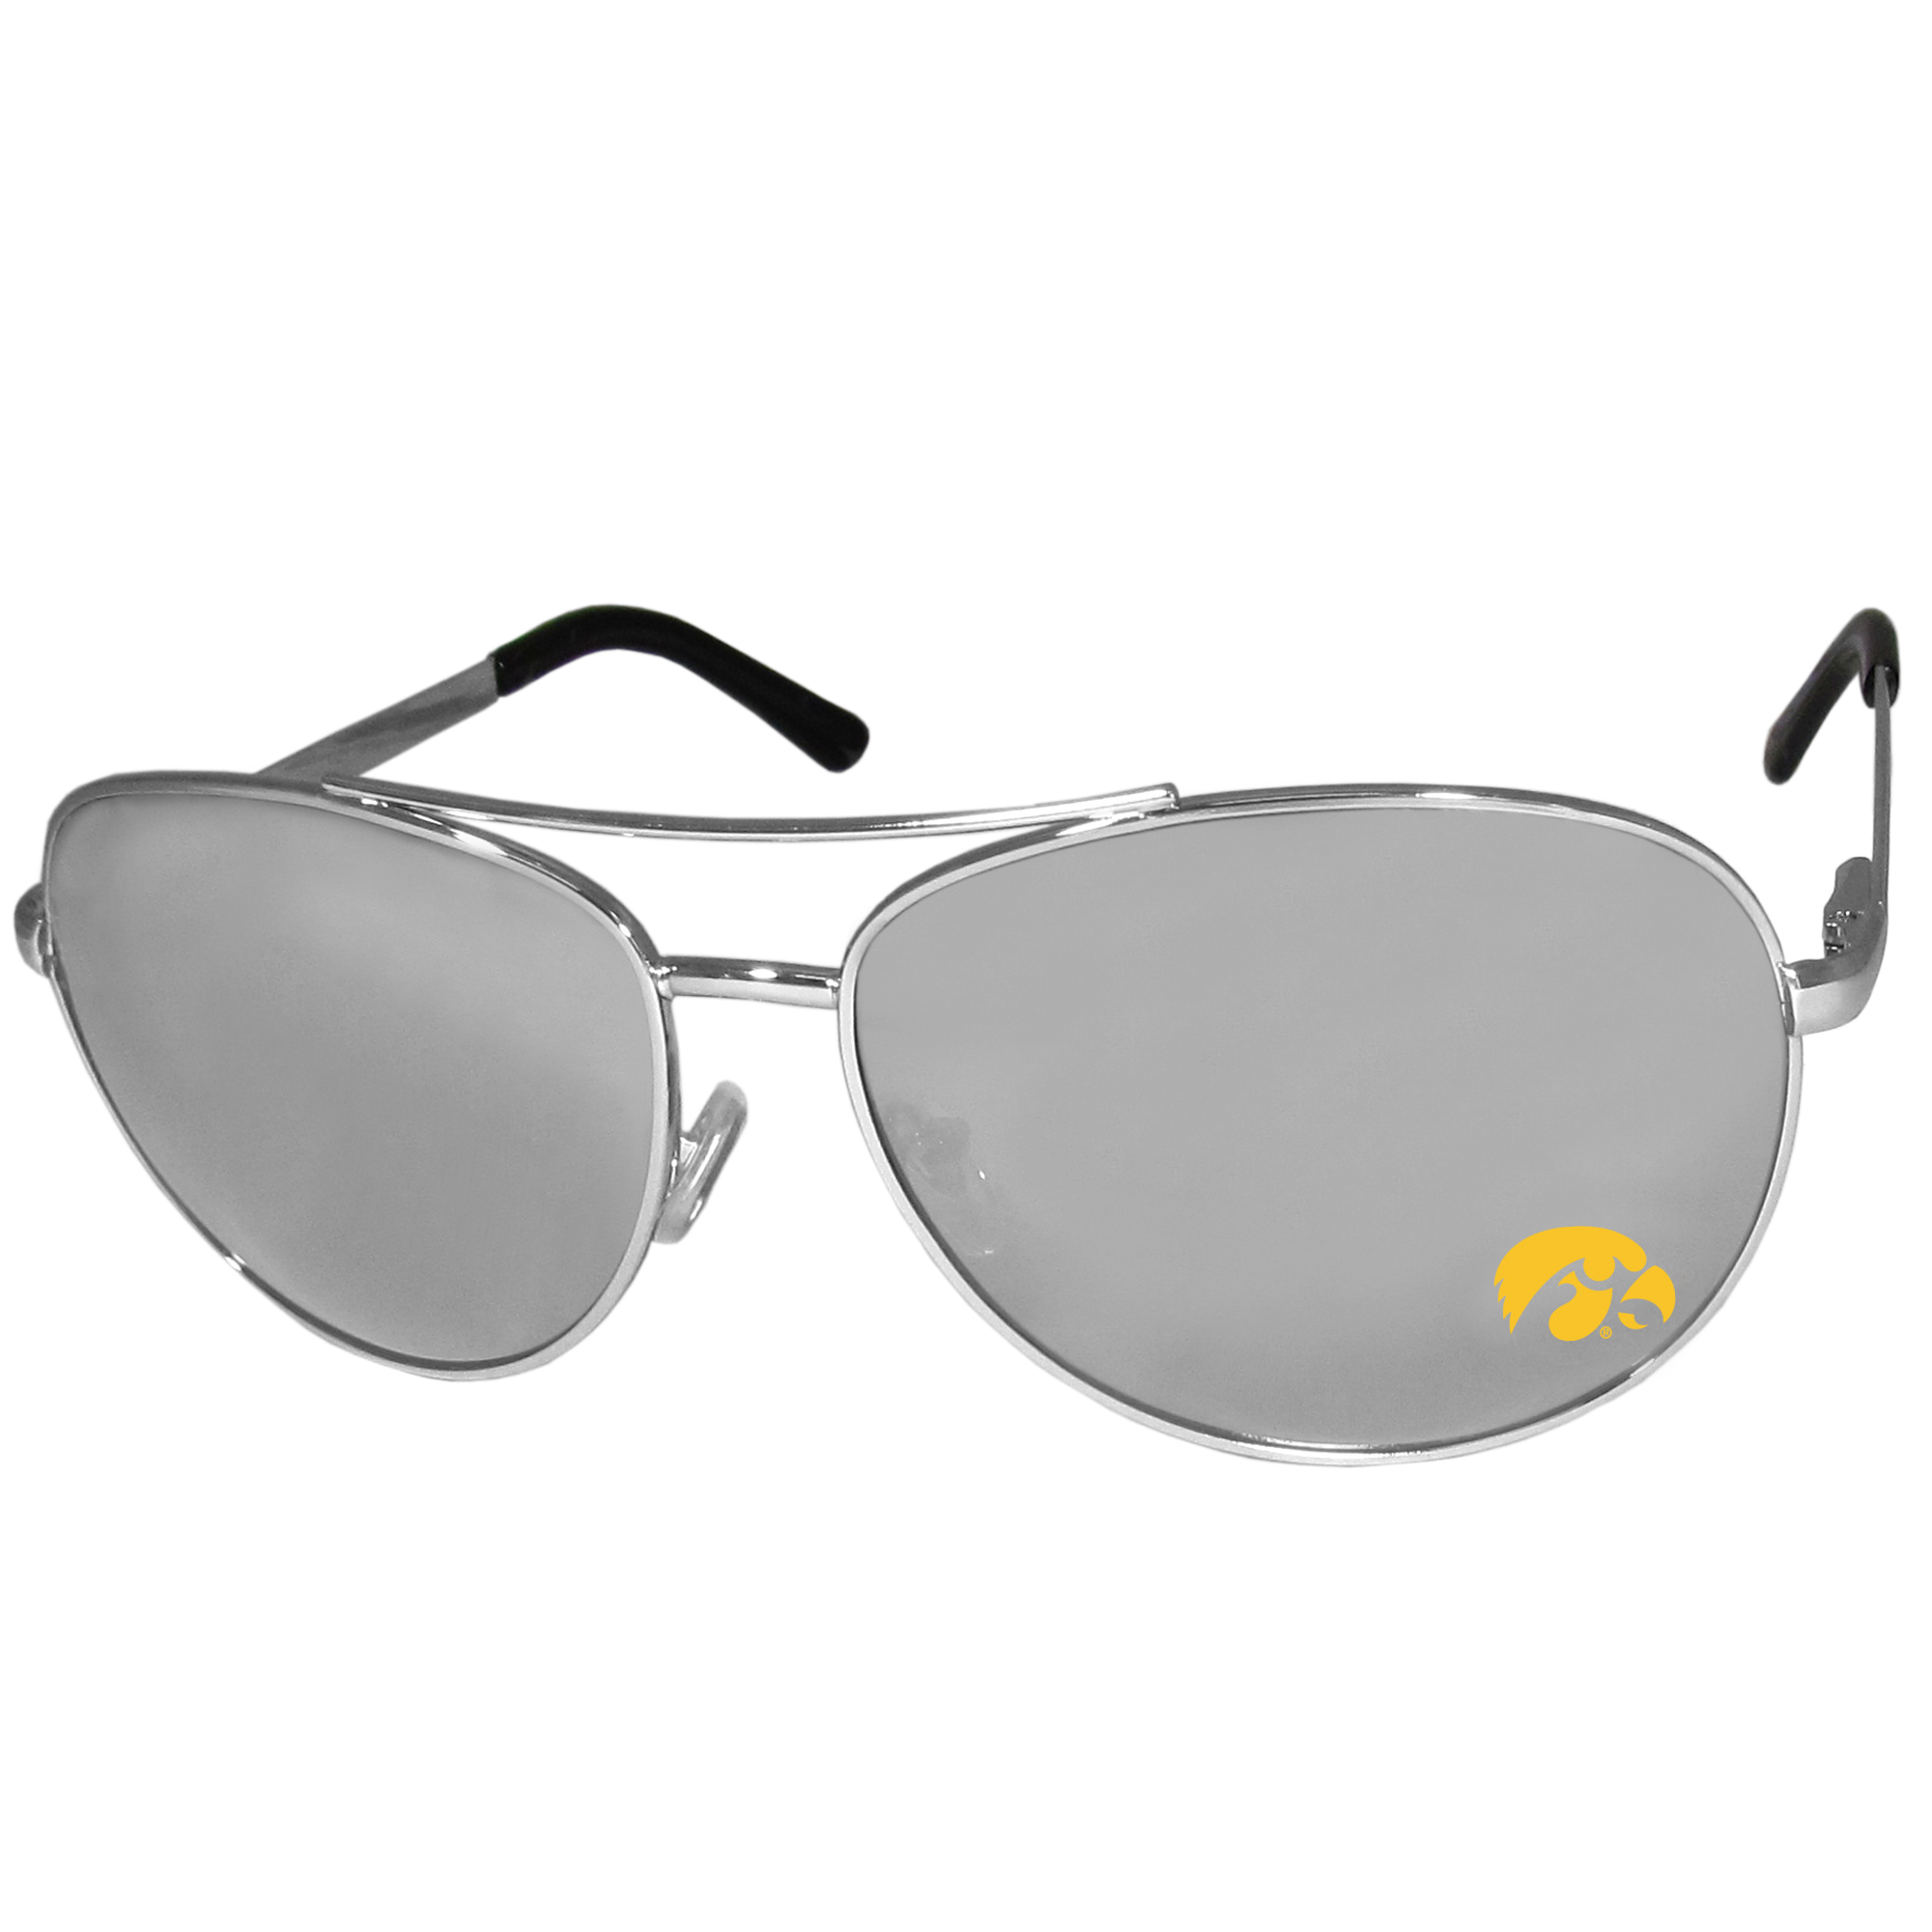 Iowa Hawkeyes Aviator Sunglasses - Our aviator sunglasses have the iconic aviator style with mirrored lenses and metal frames. The glasses feature a silk screened Iowa Hawkeyes logo in the corner of the lense. 100% UVA/UVB protection.